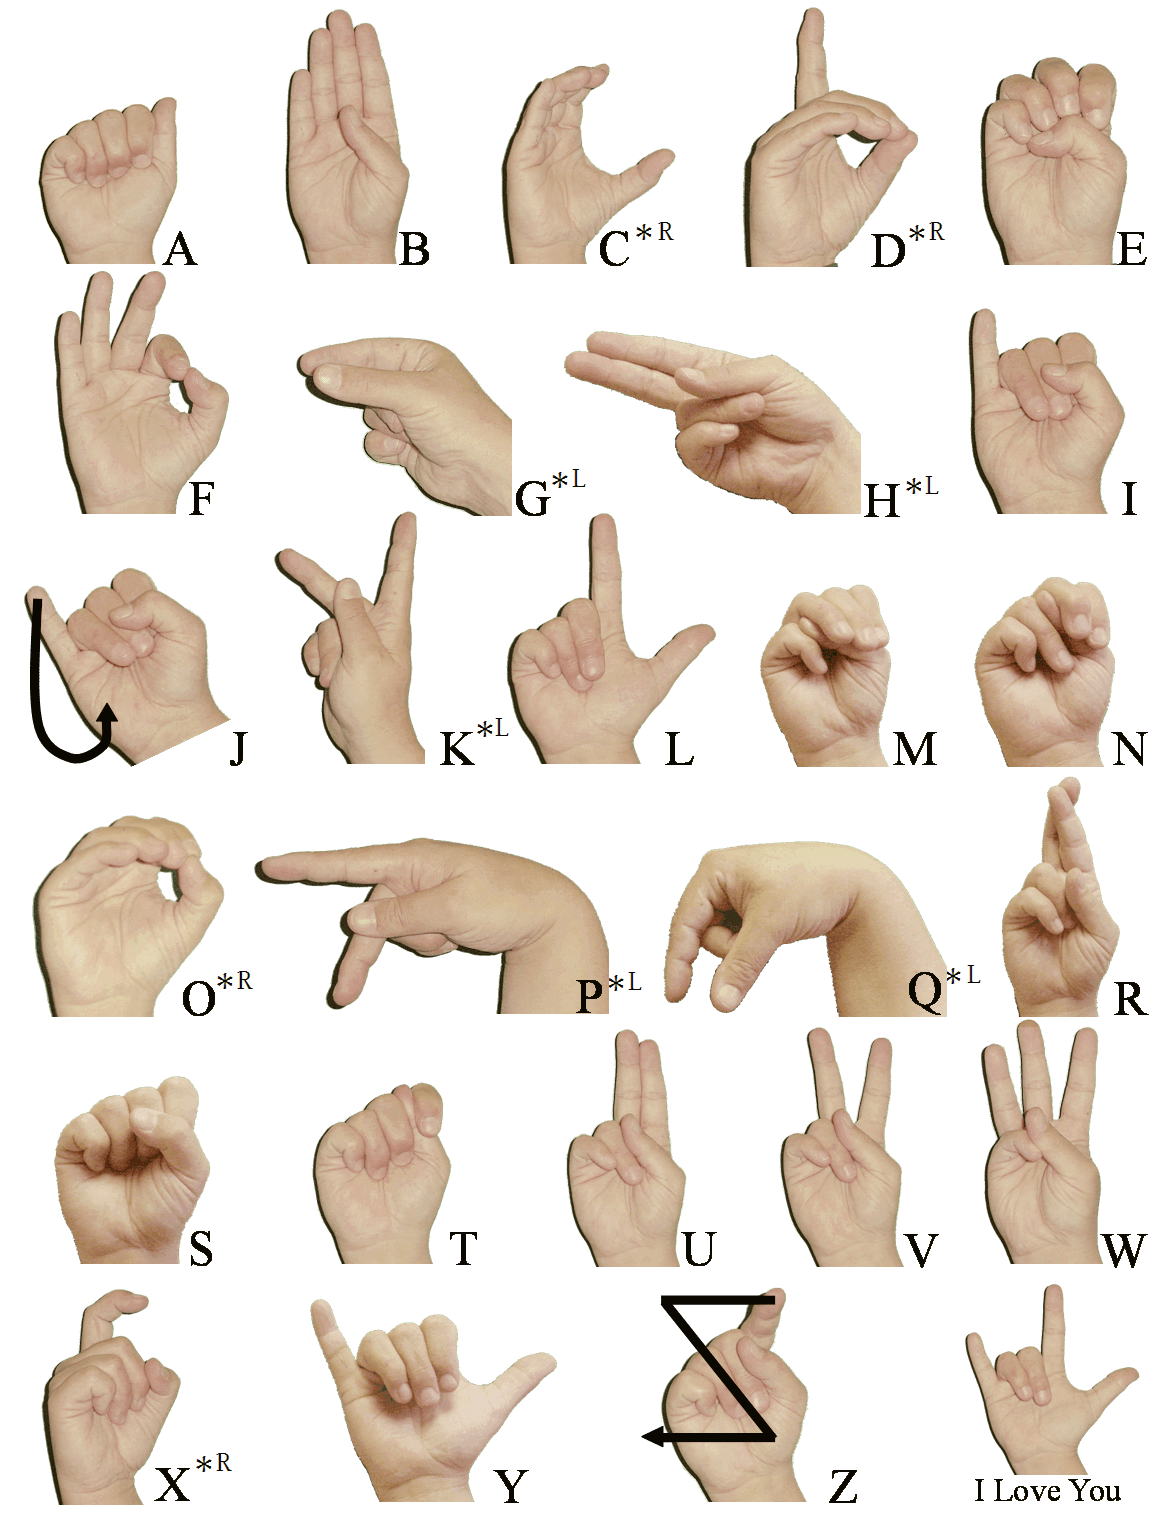 Weekend Project Sign Language And Static Gesture